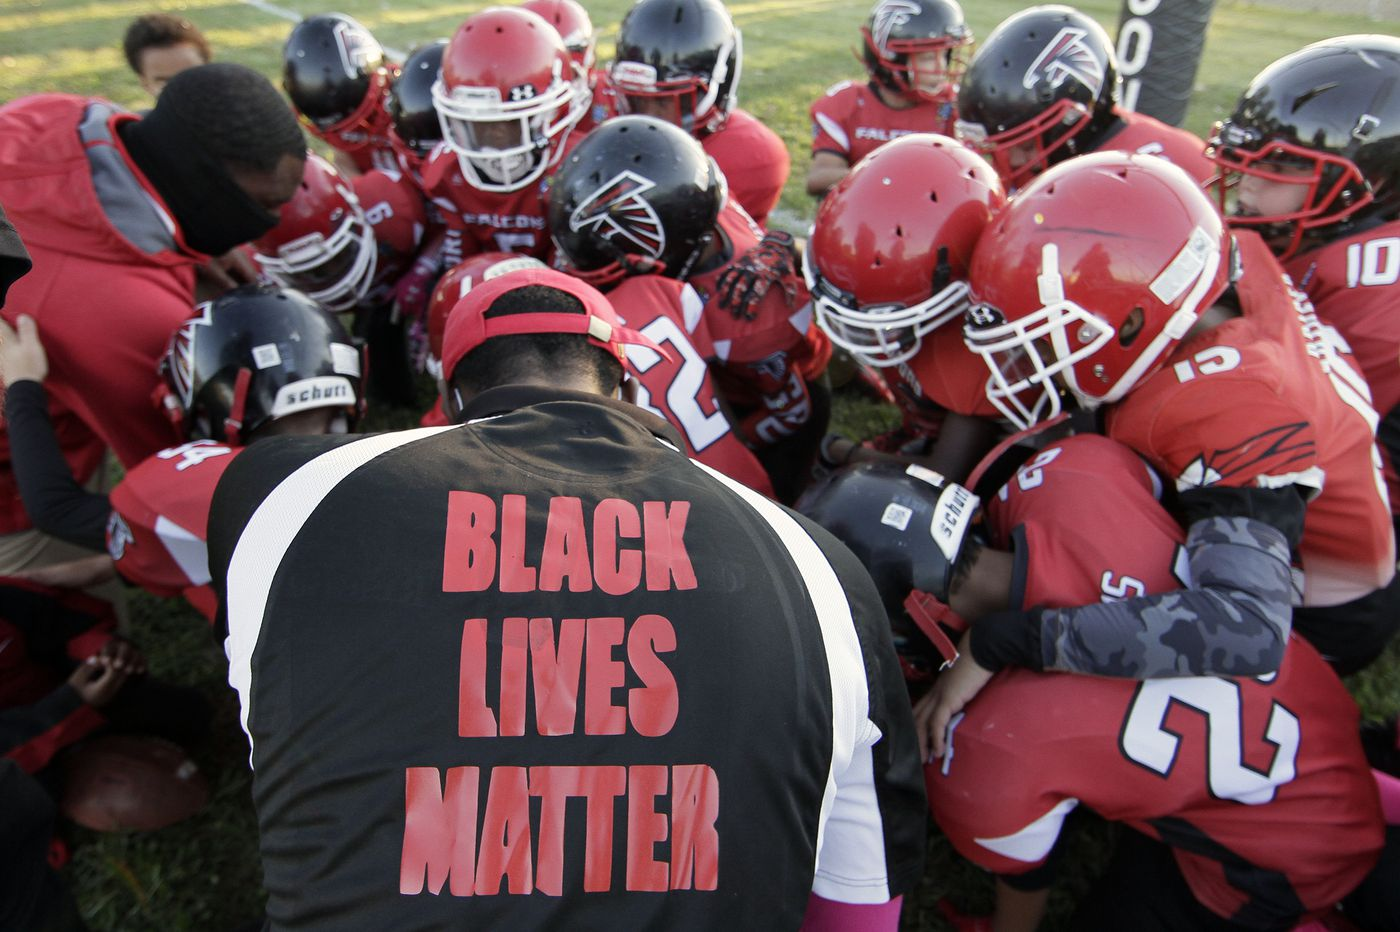 Coaches of a South Jersey football team were suspended for kneeling during the national anthem. Now people are threatening to quit the league